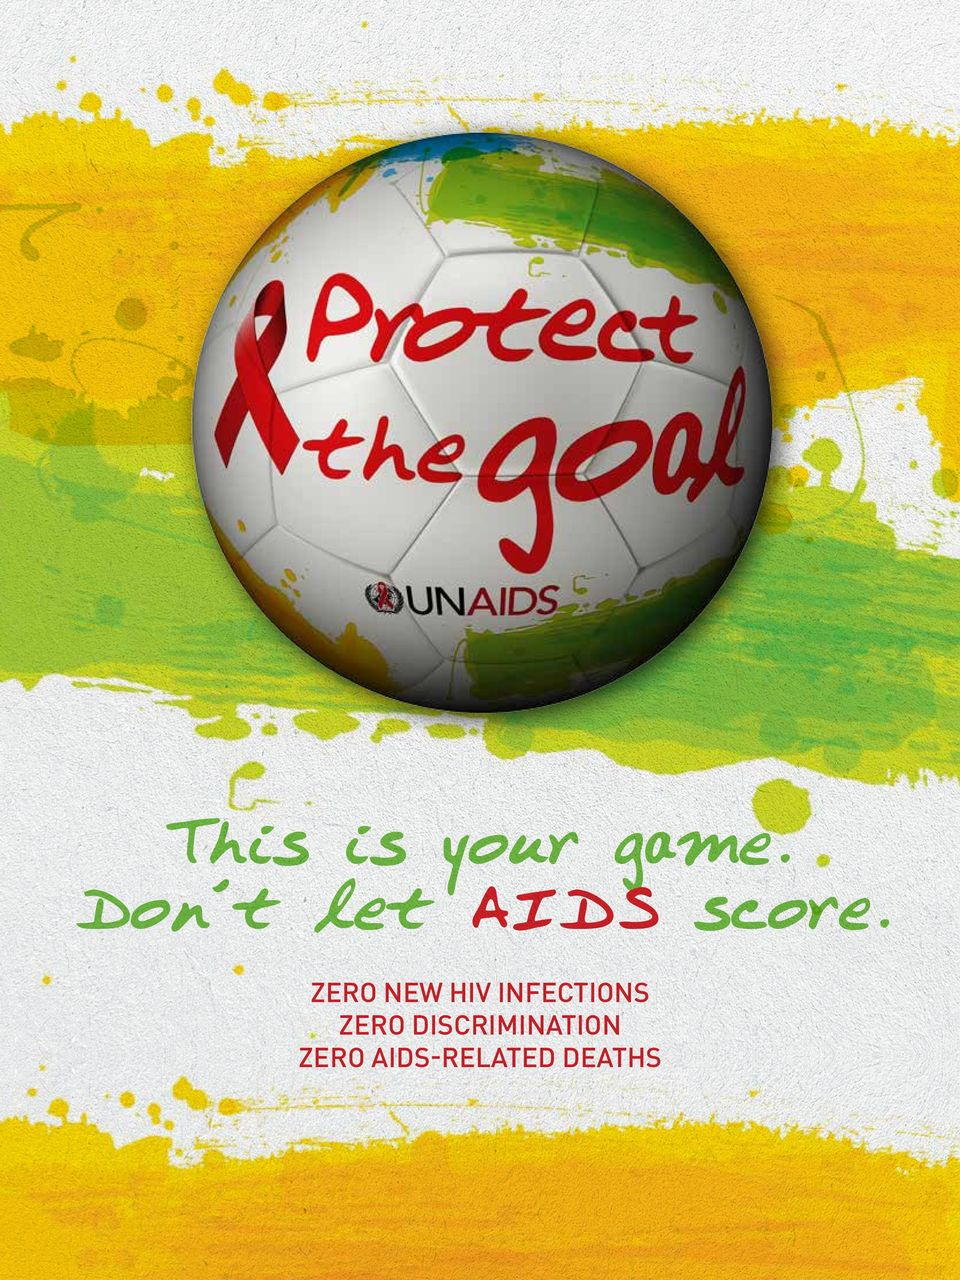 Zero new HIV infections